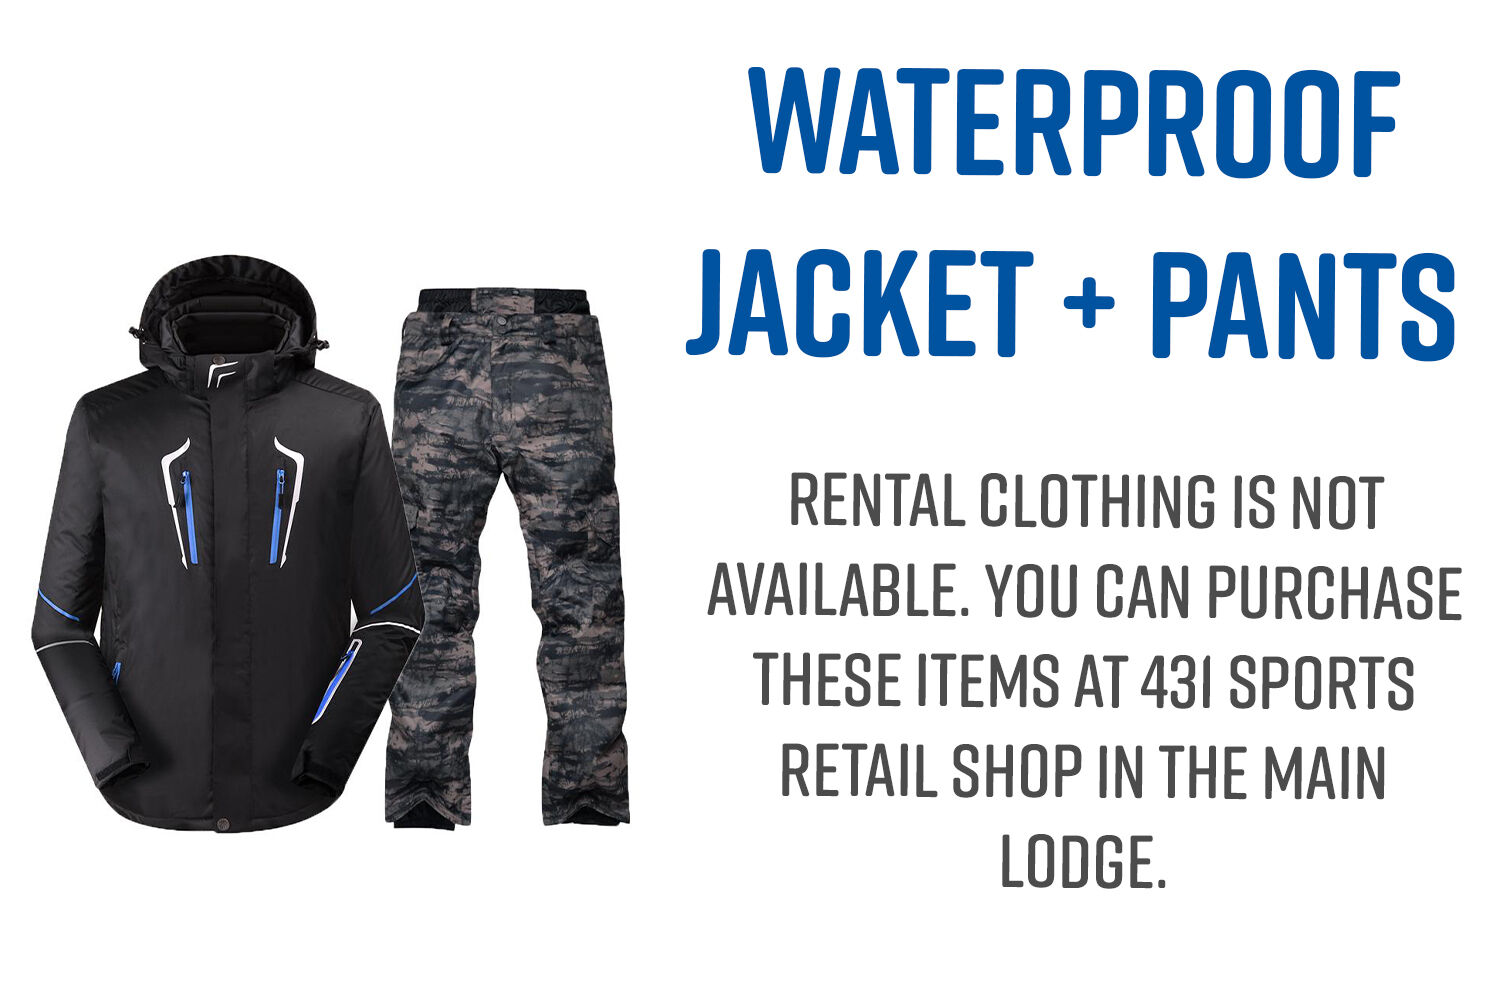 Waterproof jacket and pants